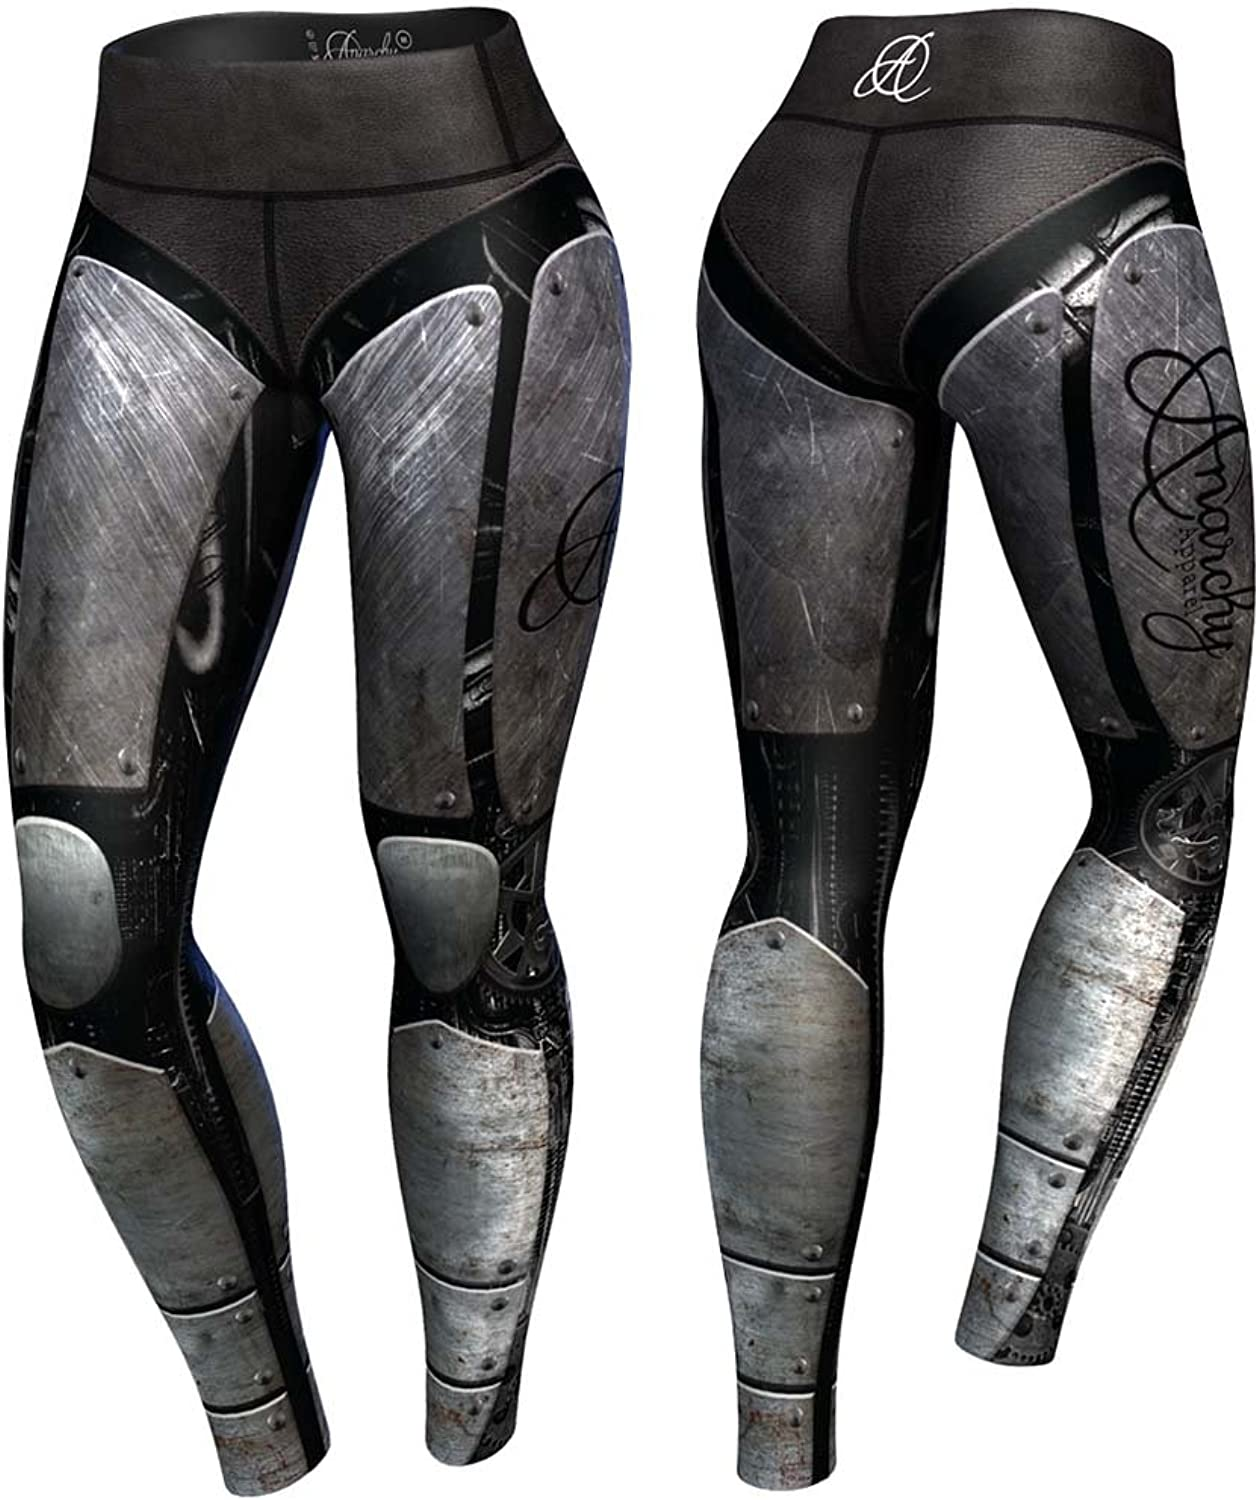 Anarchy Apparel Compression Cybers Team Fitness Pants Wear MMA Pants Legging